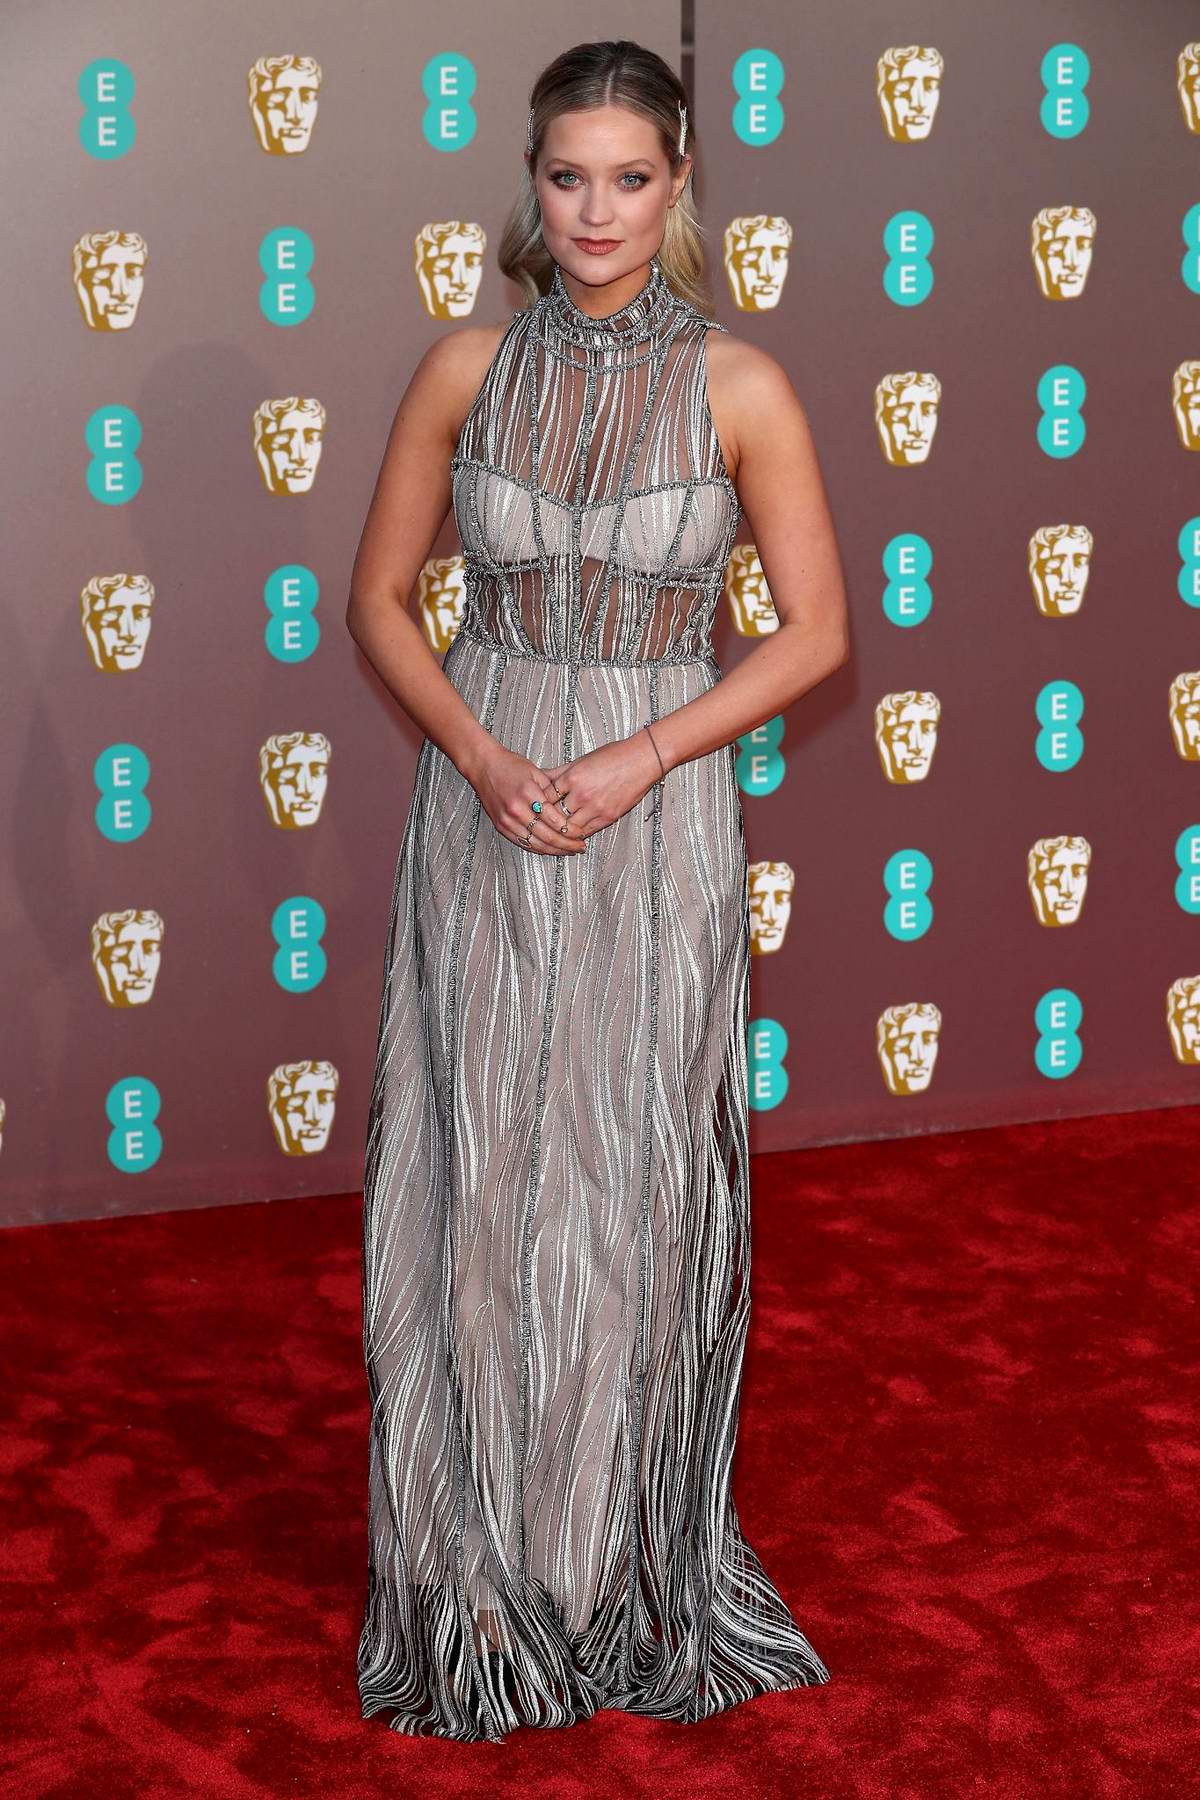 Laura Whitmore attends the 72nd EE British Academy Film Awards (BAFTA 2019) at Royal Albert Hall in London, UK